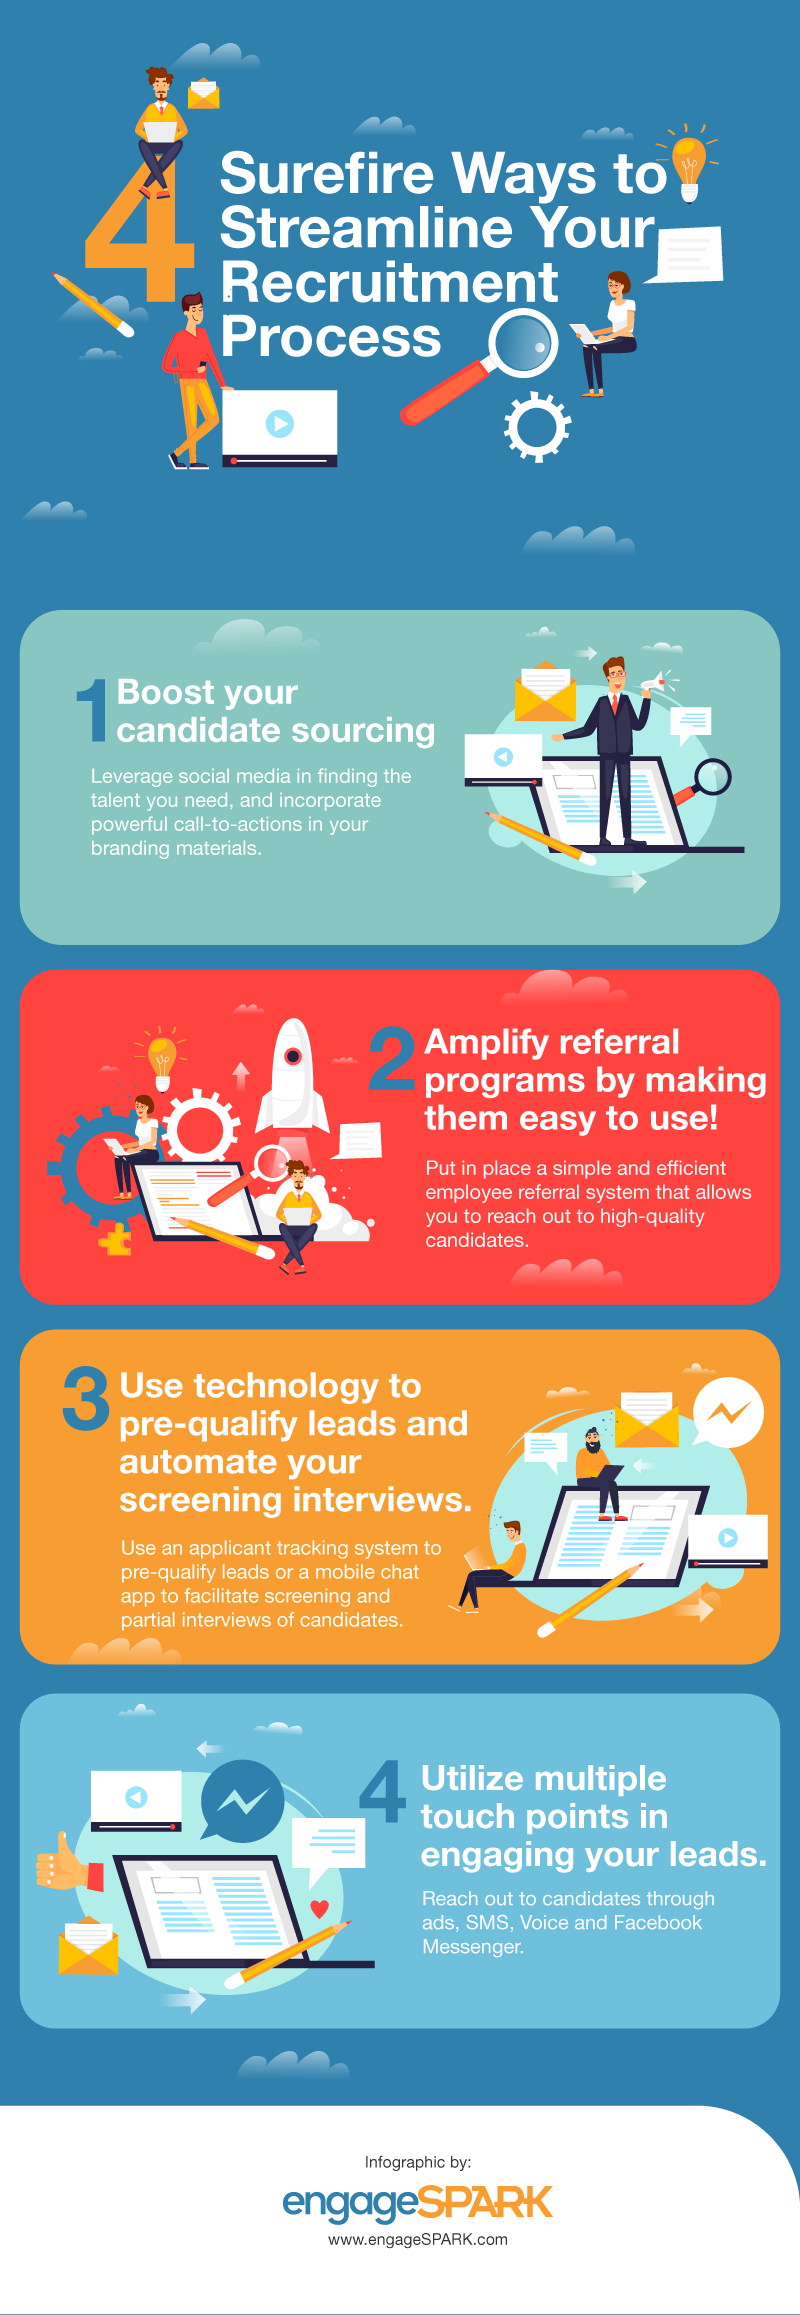 surefire-ways-streamline-recruitment-infographic-plaza